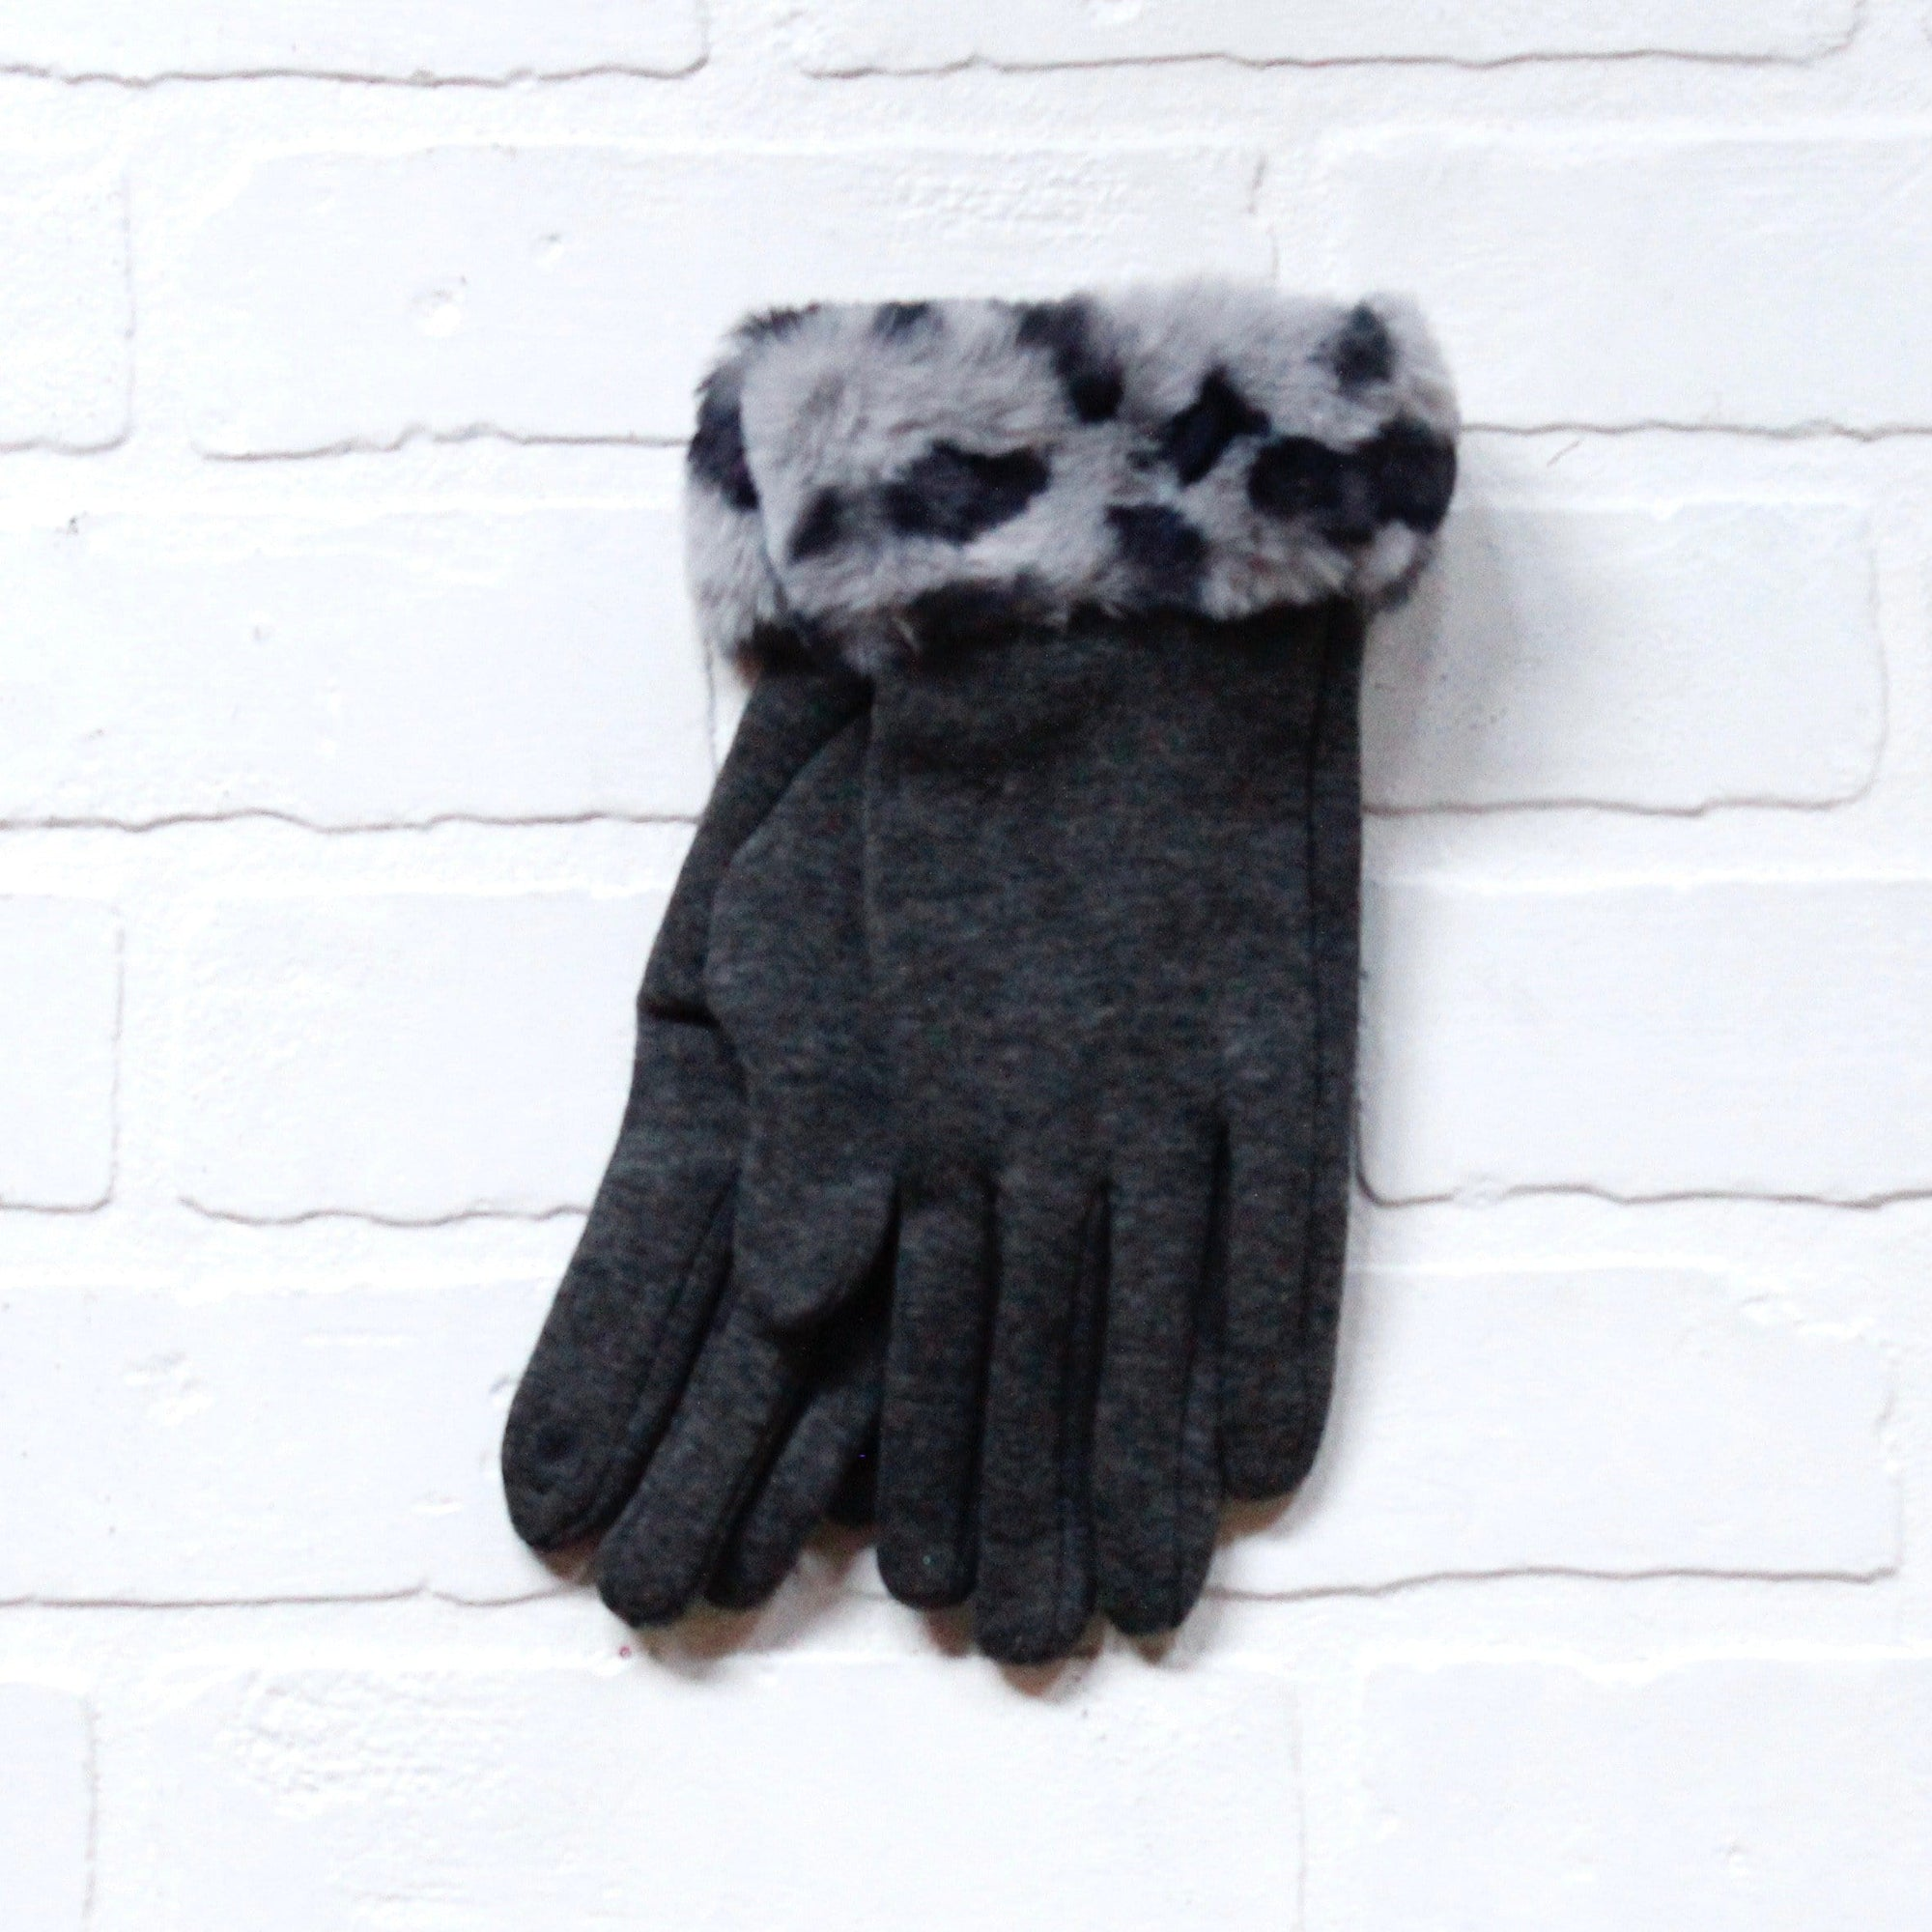 Leopard Fur Cuff Gloves